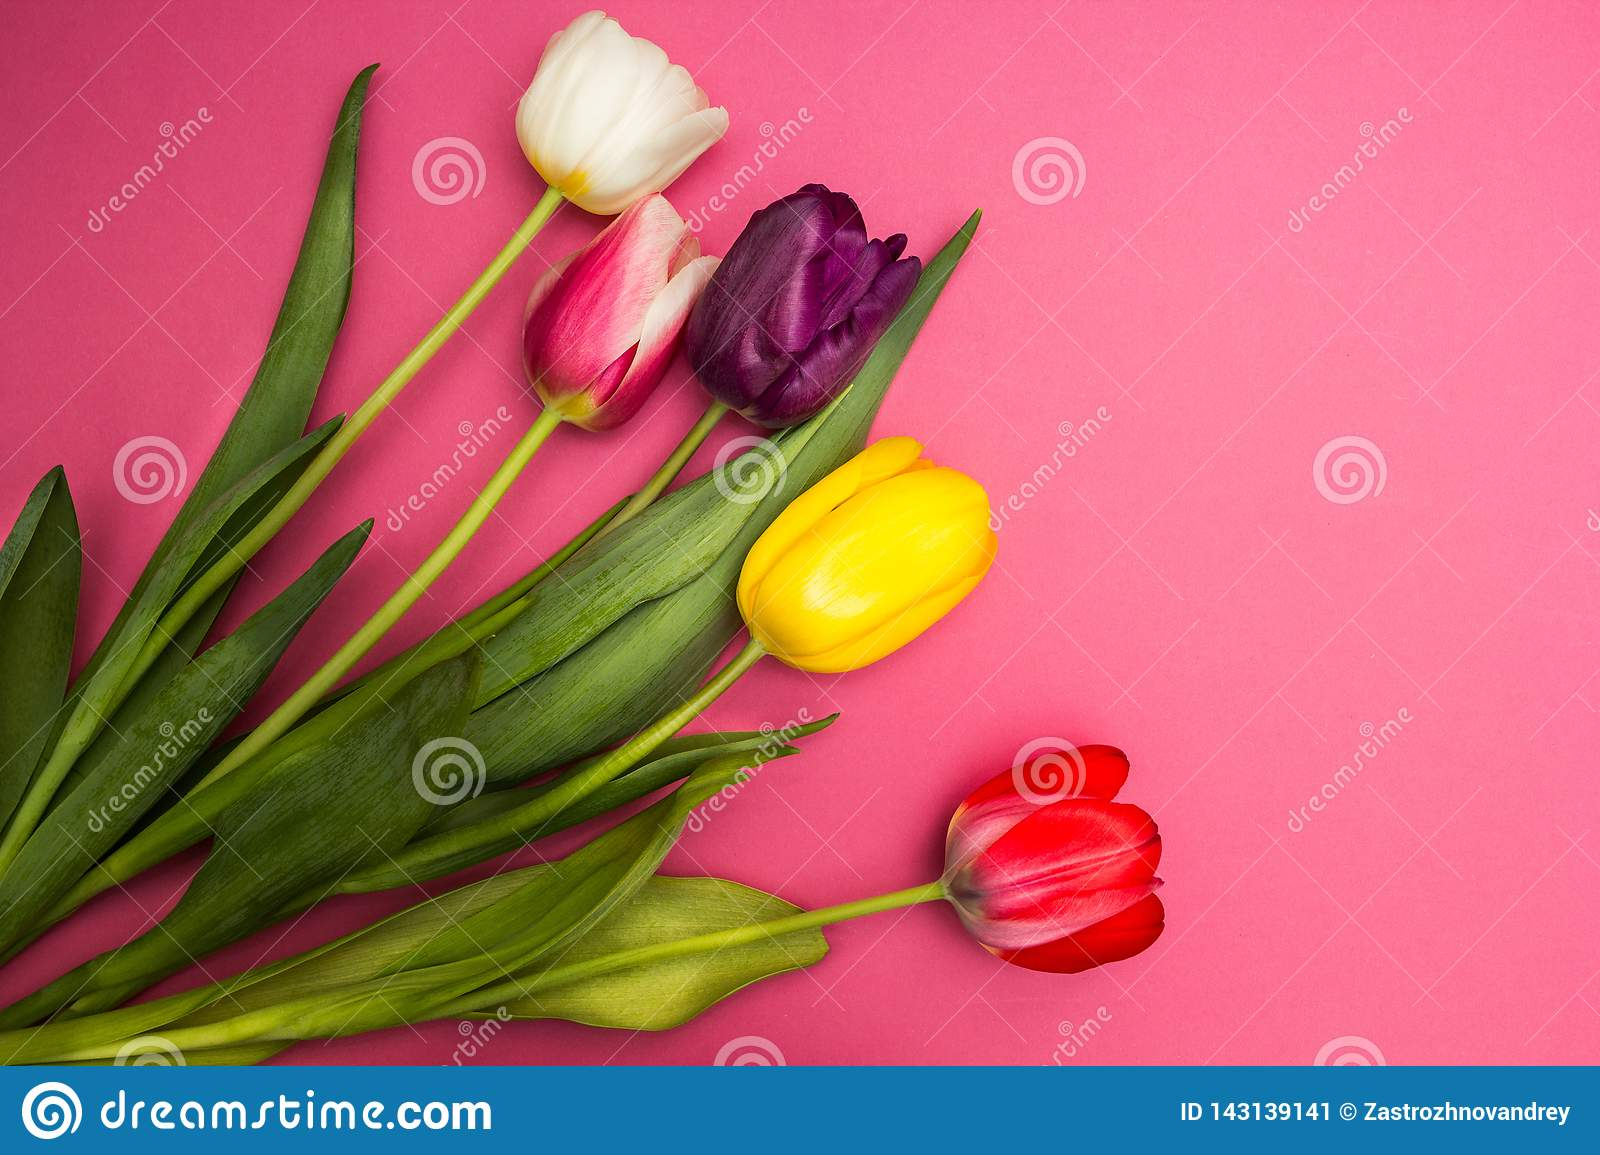 Bouquet of colorful tulips on a pink background